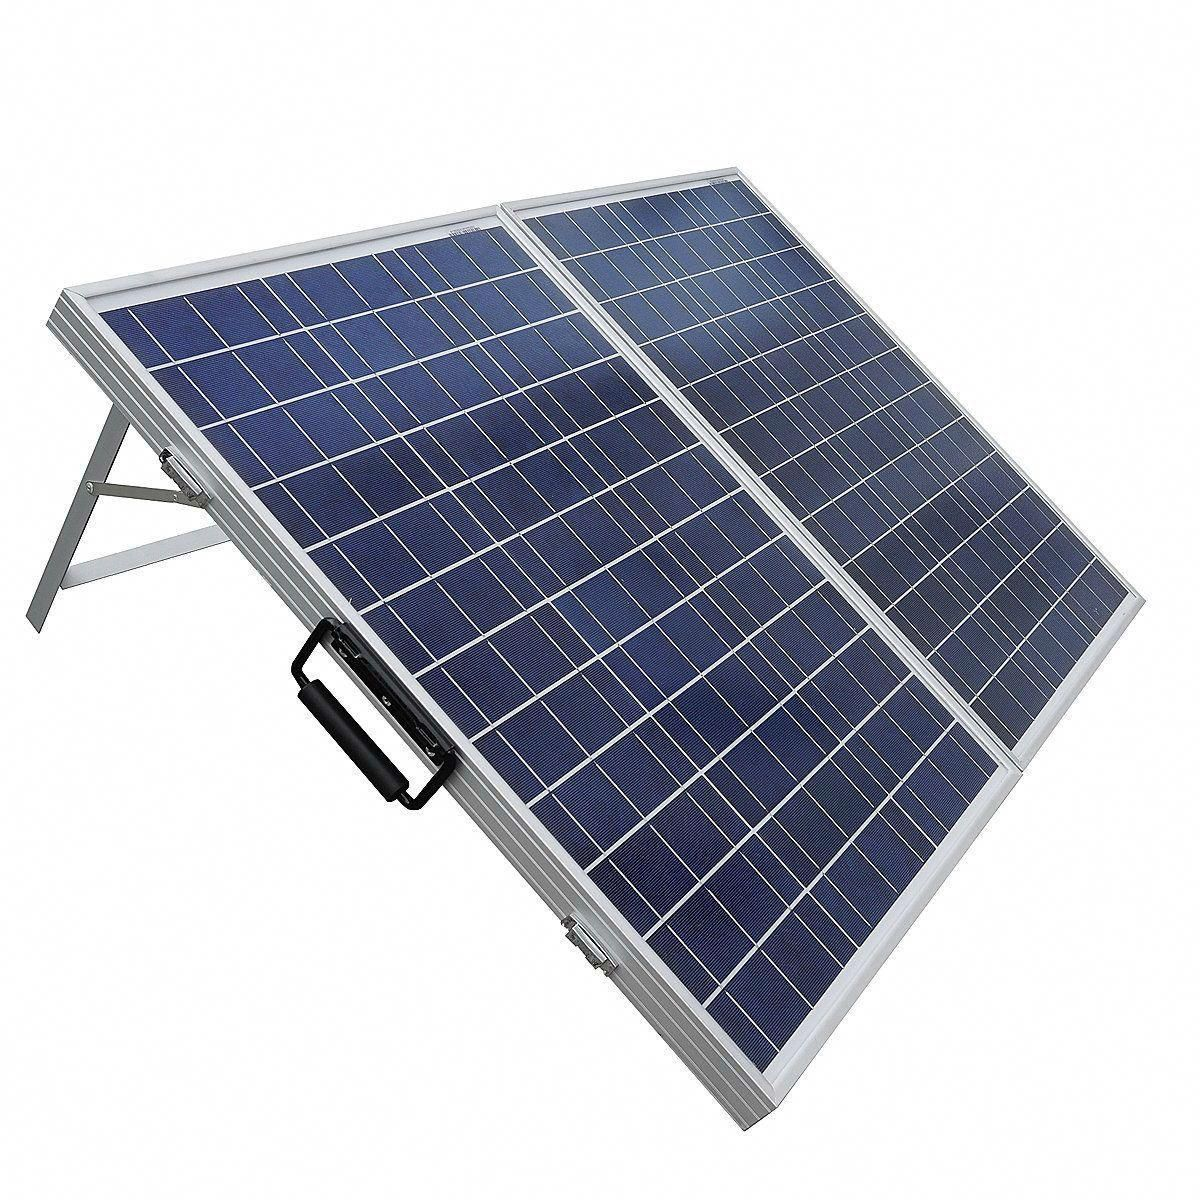 100 Watt Portable Folding Solar Panel 12v Battery Charger With Charge Controller Batteryreconditioningdiy Best Solar Panels Solar Panels Solar Panels For Home